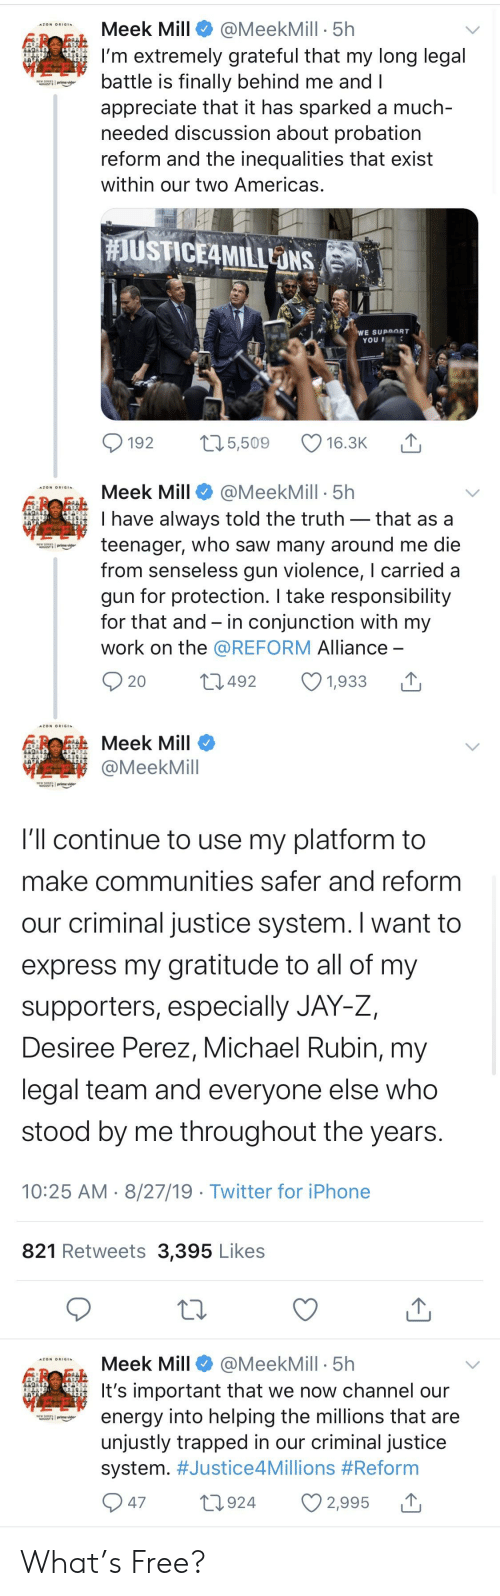 Blackpeopletwitter, Energy, and Funny: Meek Mill  @MeekMill 5h  AZON ORIGIN  I'm extremely grateful that my long legal  battle is finally behind me and I  appreciate that it has sparked a much-  needed discussion about probation  reform and the inequalities that exist  AUSSTprime vider  within our two Americas.  #JUSTICE4MILLONS  WE SUPPORT  YOU  t15,509  192  16.3K  Meek Mill  @MeekMill 5h  I have always told the truth- that as a  teenager, who saw many around me die  from senseless gun violence, I carried  gun for protection. I take responsibility  for that and in conjunction with my  W prime vider  work on the @REFORM Alliance -  20  L492  1,933  TOBMeek Mill  @MeekMill  MwSprime vider  I'll continue to use my platform to  make communities safer and reform  our criminal justice system. I want to  express my gratitude to all of my  supporters, especially JAY-Z,  Desiree Perez, Michael Rubin, my  legal team and everyone else who  stood by me throughout the years.  10:25 AM 8/27/19 Twitter for iPhone  821 Retweets 3,395 Likes  Meek Mill  @MeekMill 5h  A2ON ORIGIN.  It's important that we now channel our  energy into helping the millions that are  unjustly trapped in our criminal justice  system. #Justice4Millions #Reform  Nw SERVS  prime vide  47  L924  2,995 What's Free?